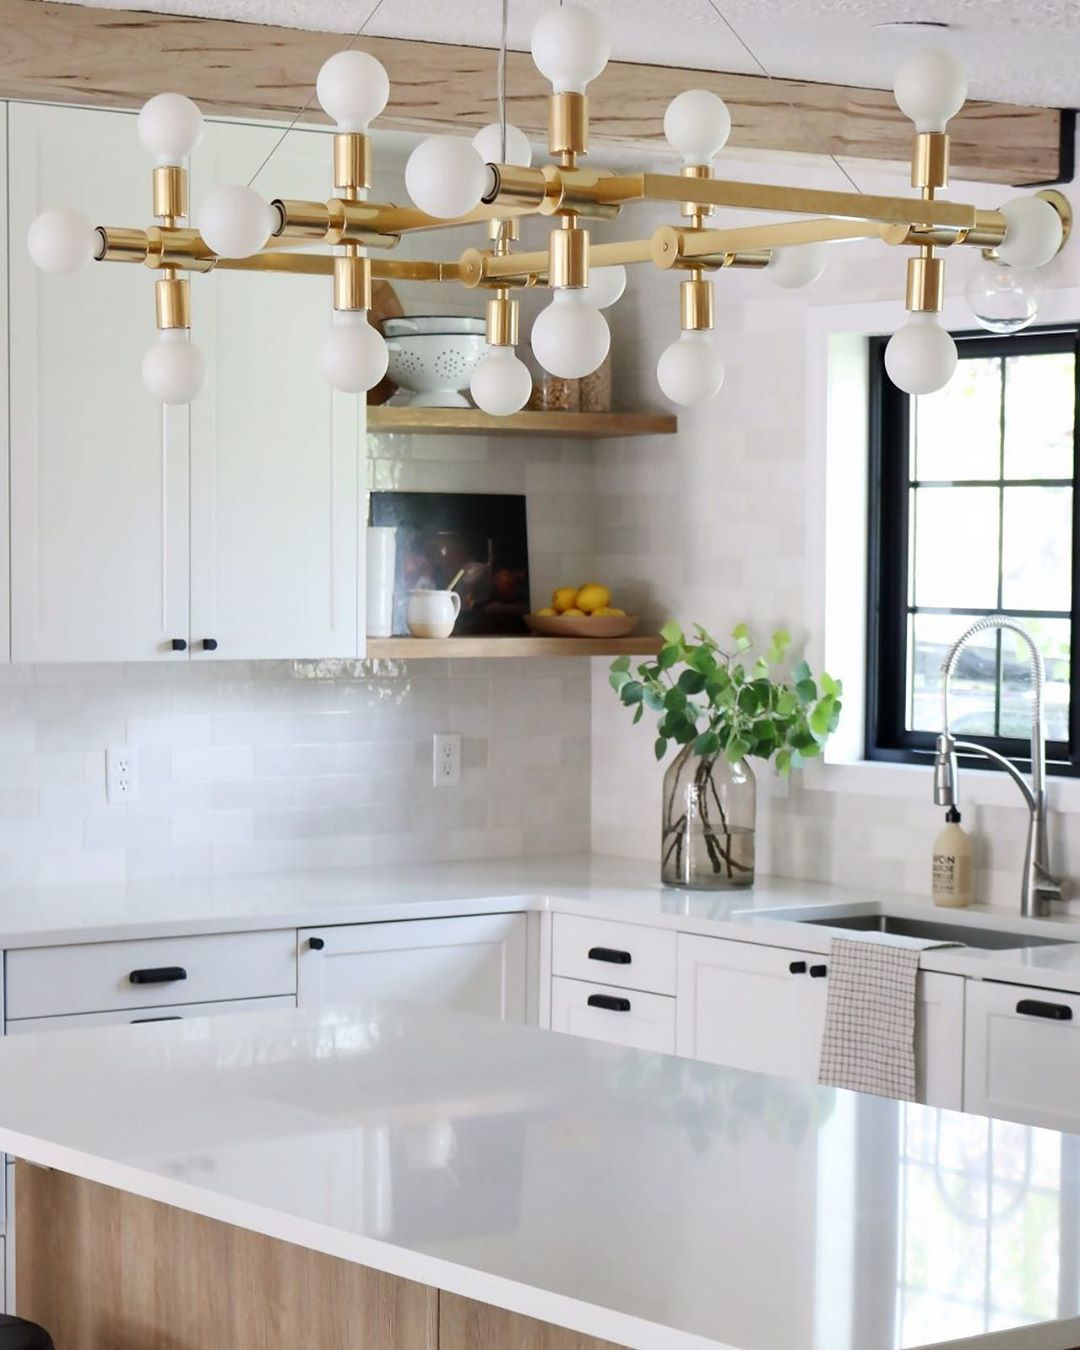 You Asked For It Today On Chrislovesjulia Com Get The Fullmer Kitchen Look For Less Over 11k Le Kitchen Inspirations Kitchen Renovation Ikea Kitchen Design